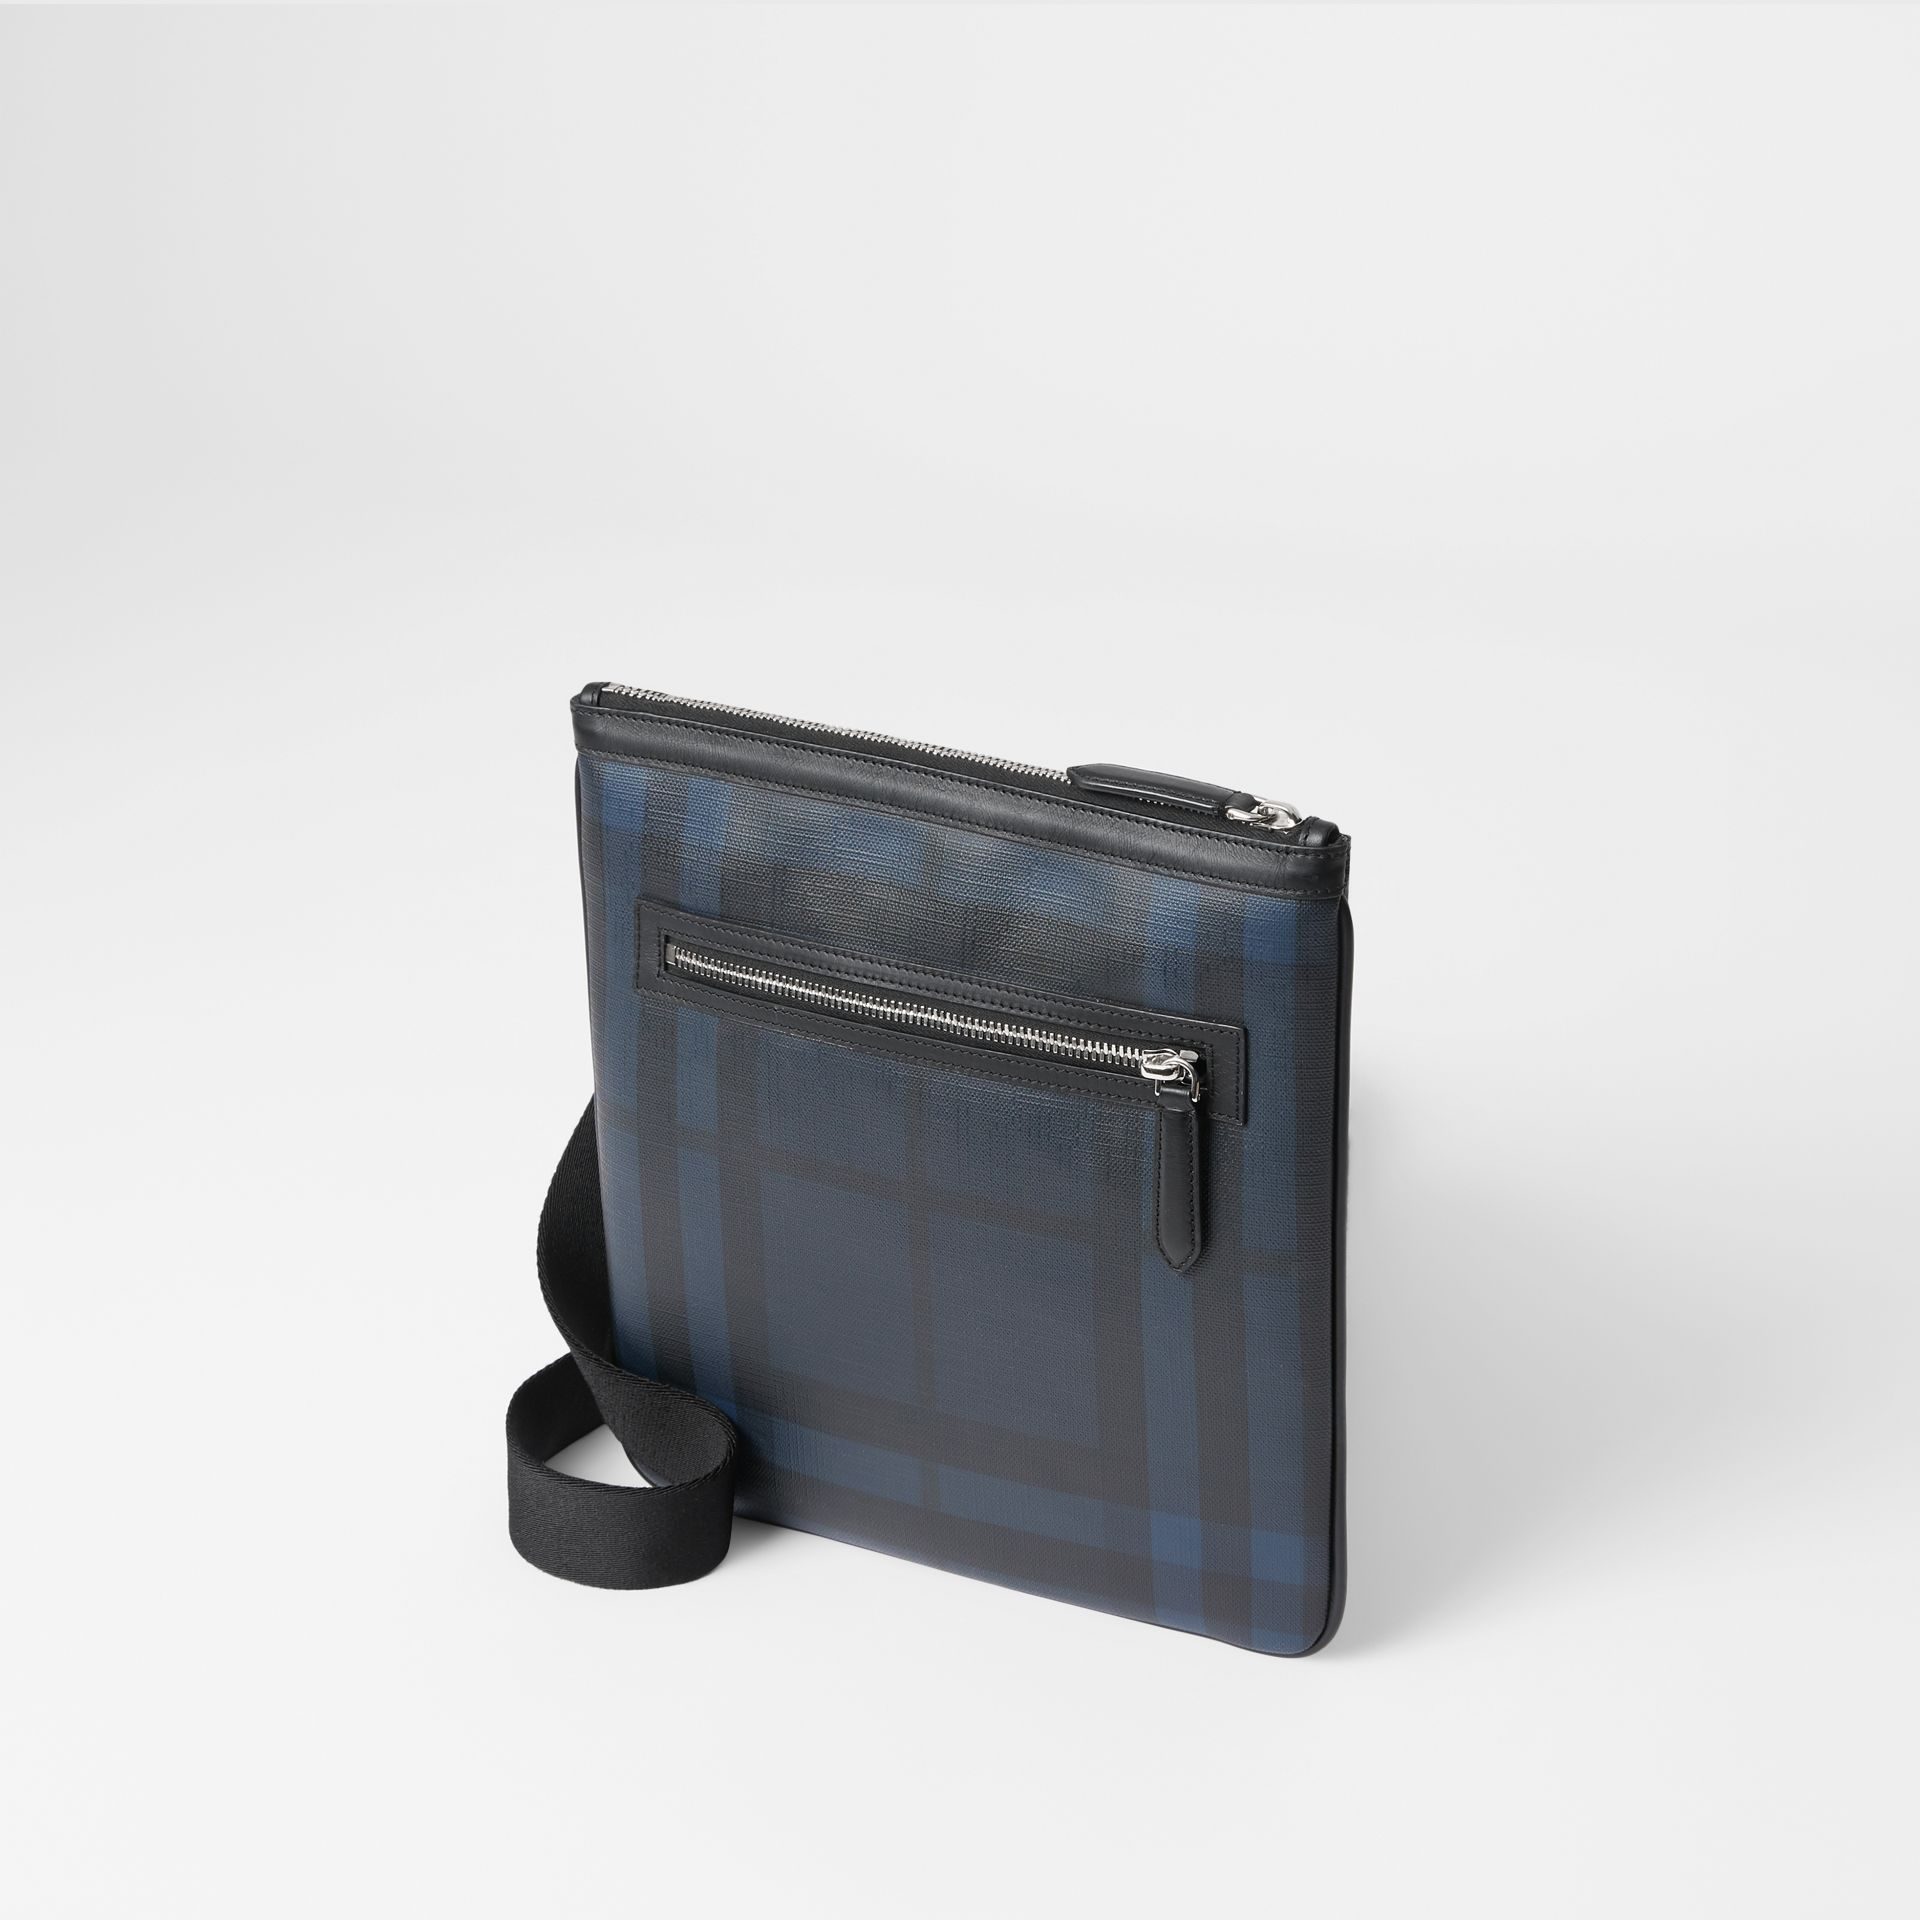 Leather Trim London Check Crossbody Bag in Navy/black - Men | Burberry - gallery image 3